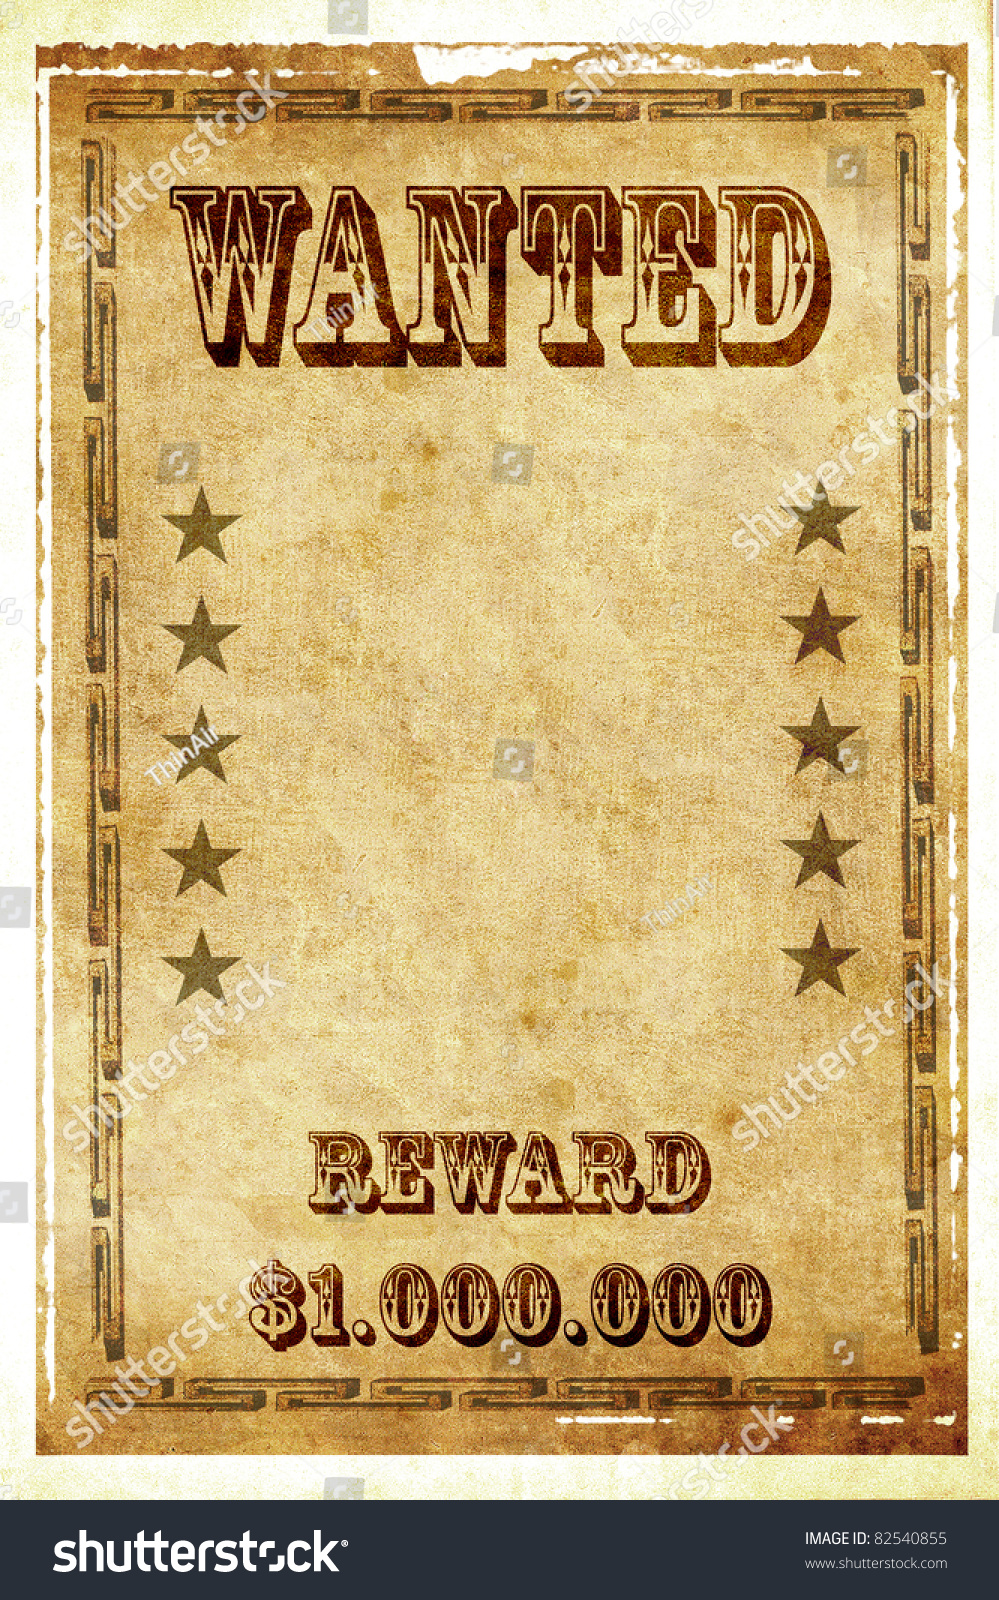 vintage wanted poster stock illustration 82540855 shutterstock